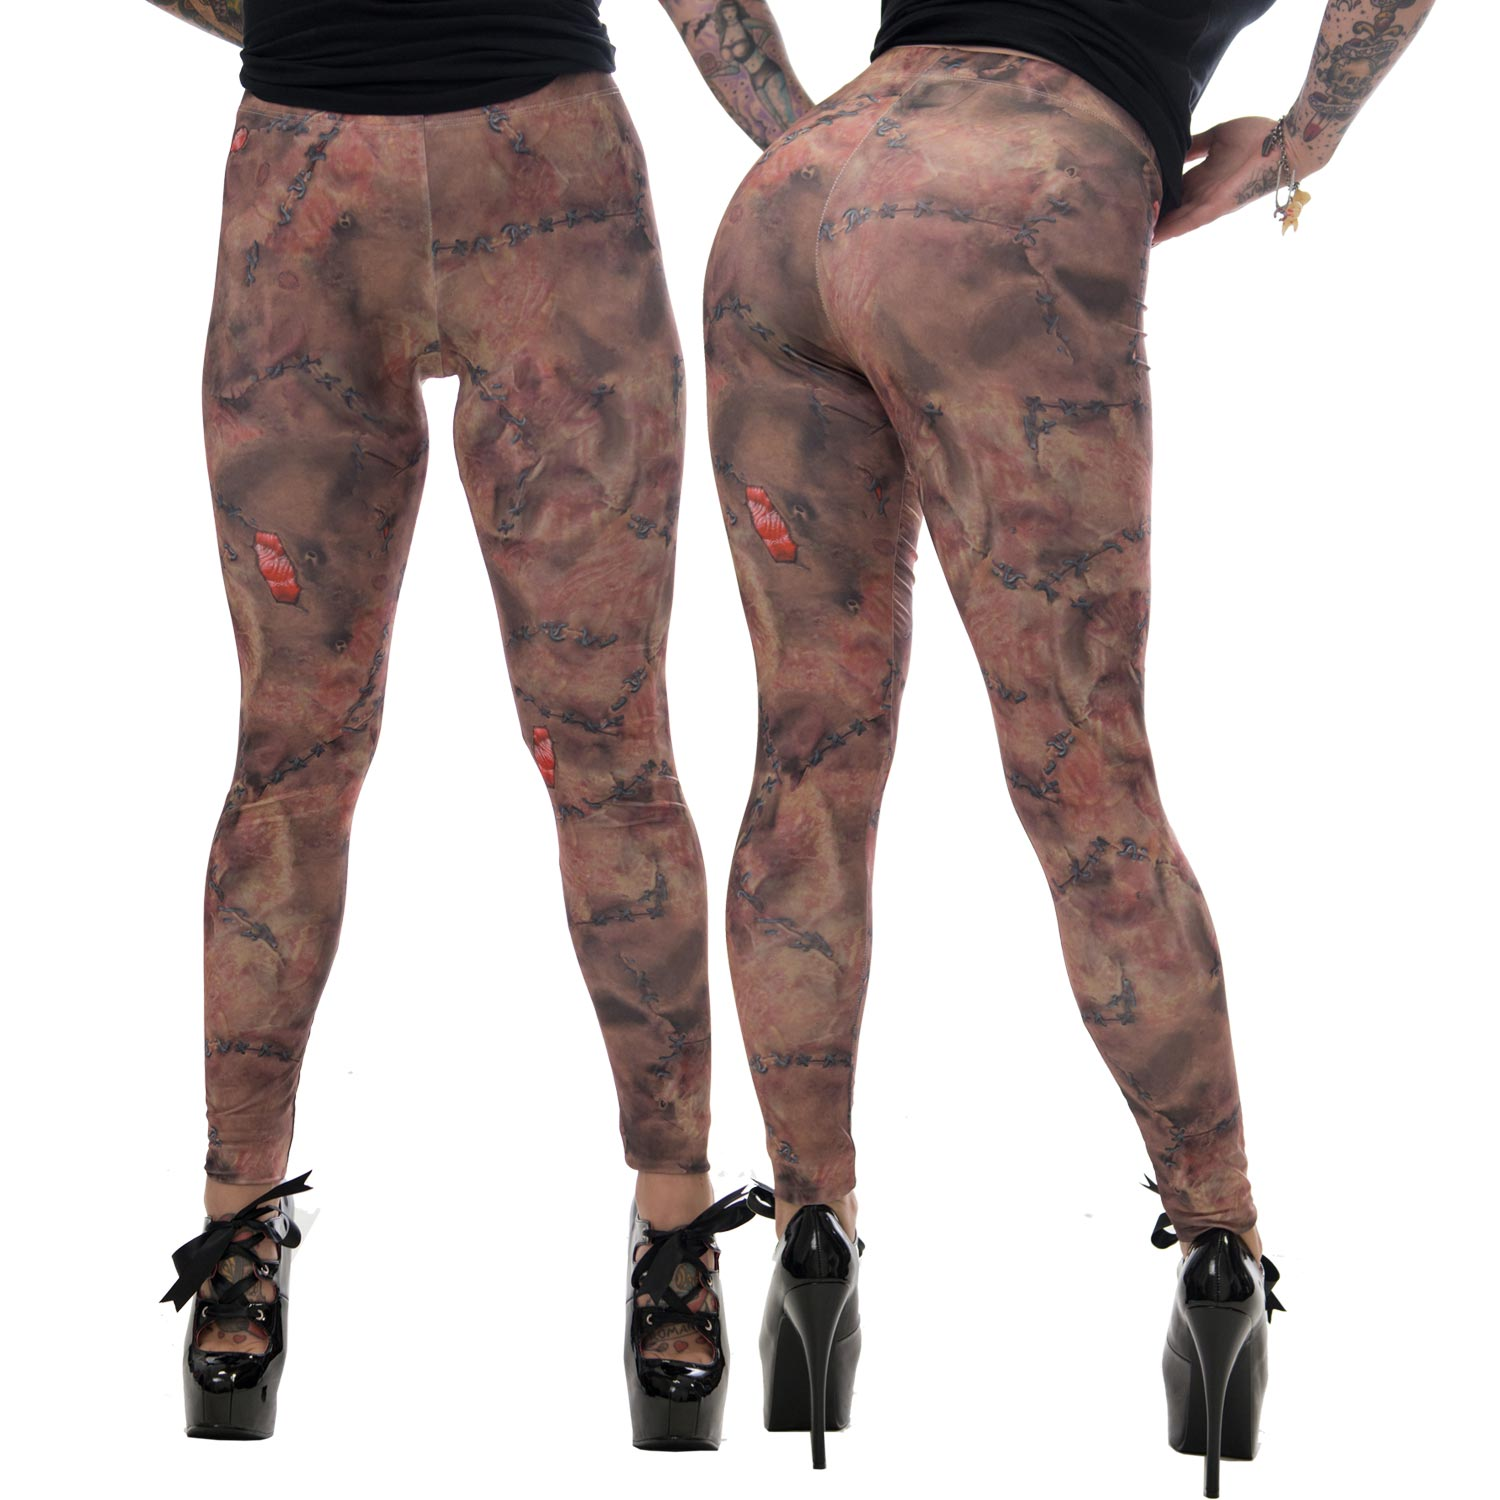 Stitched Skin Leggings